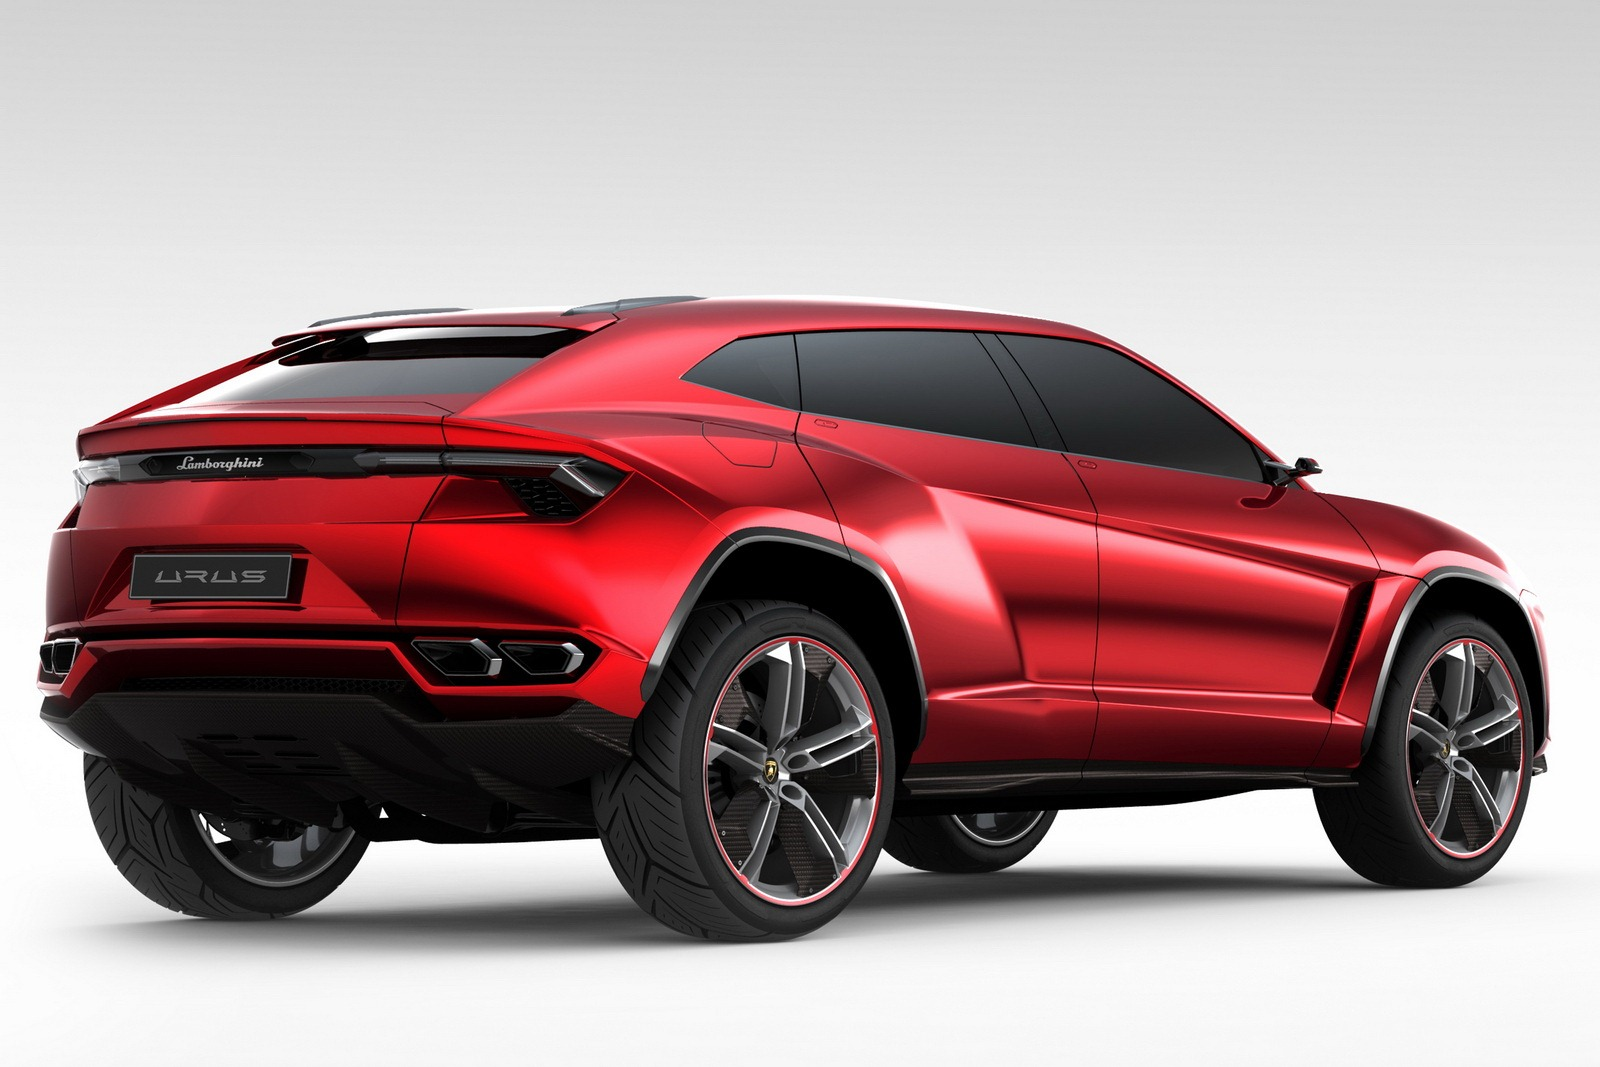 Lamborghini Urus Is The Second Most Expensive Suv